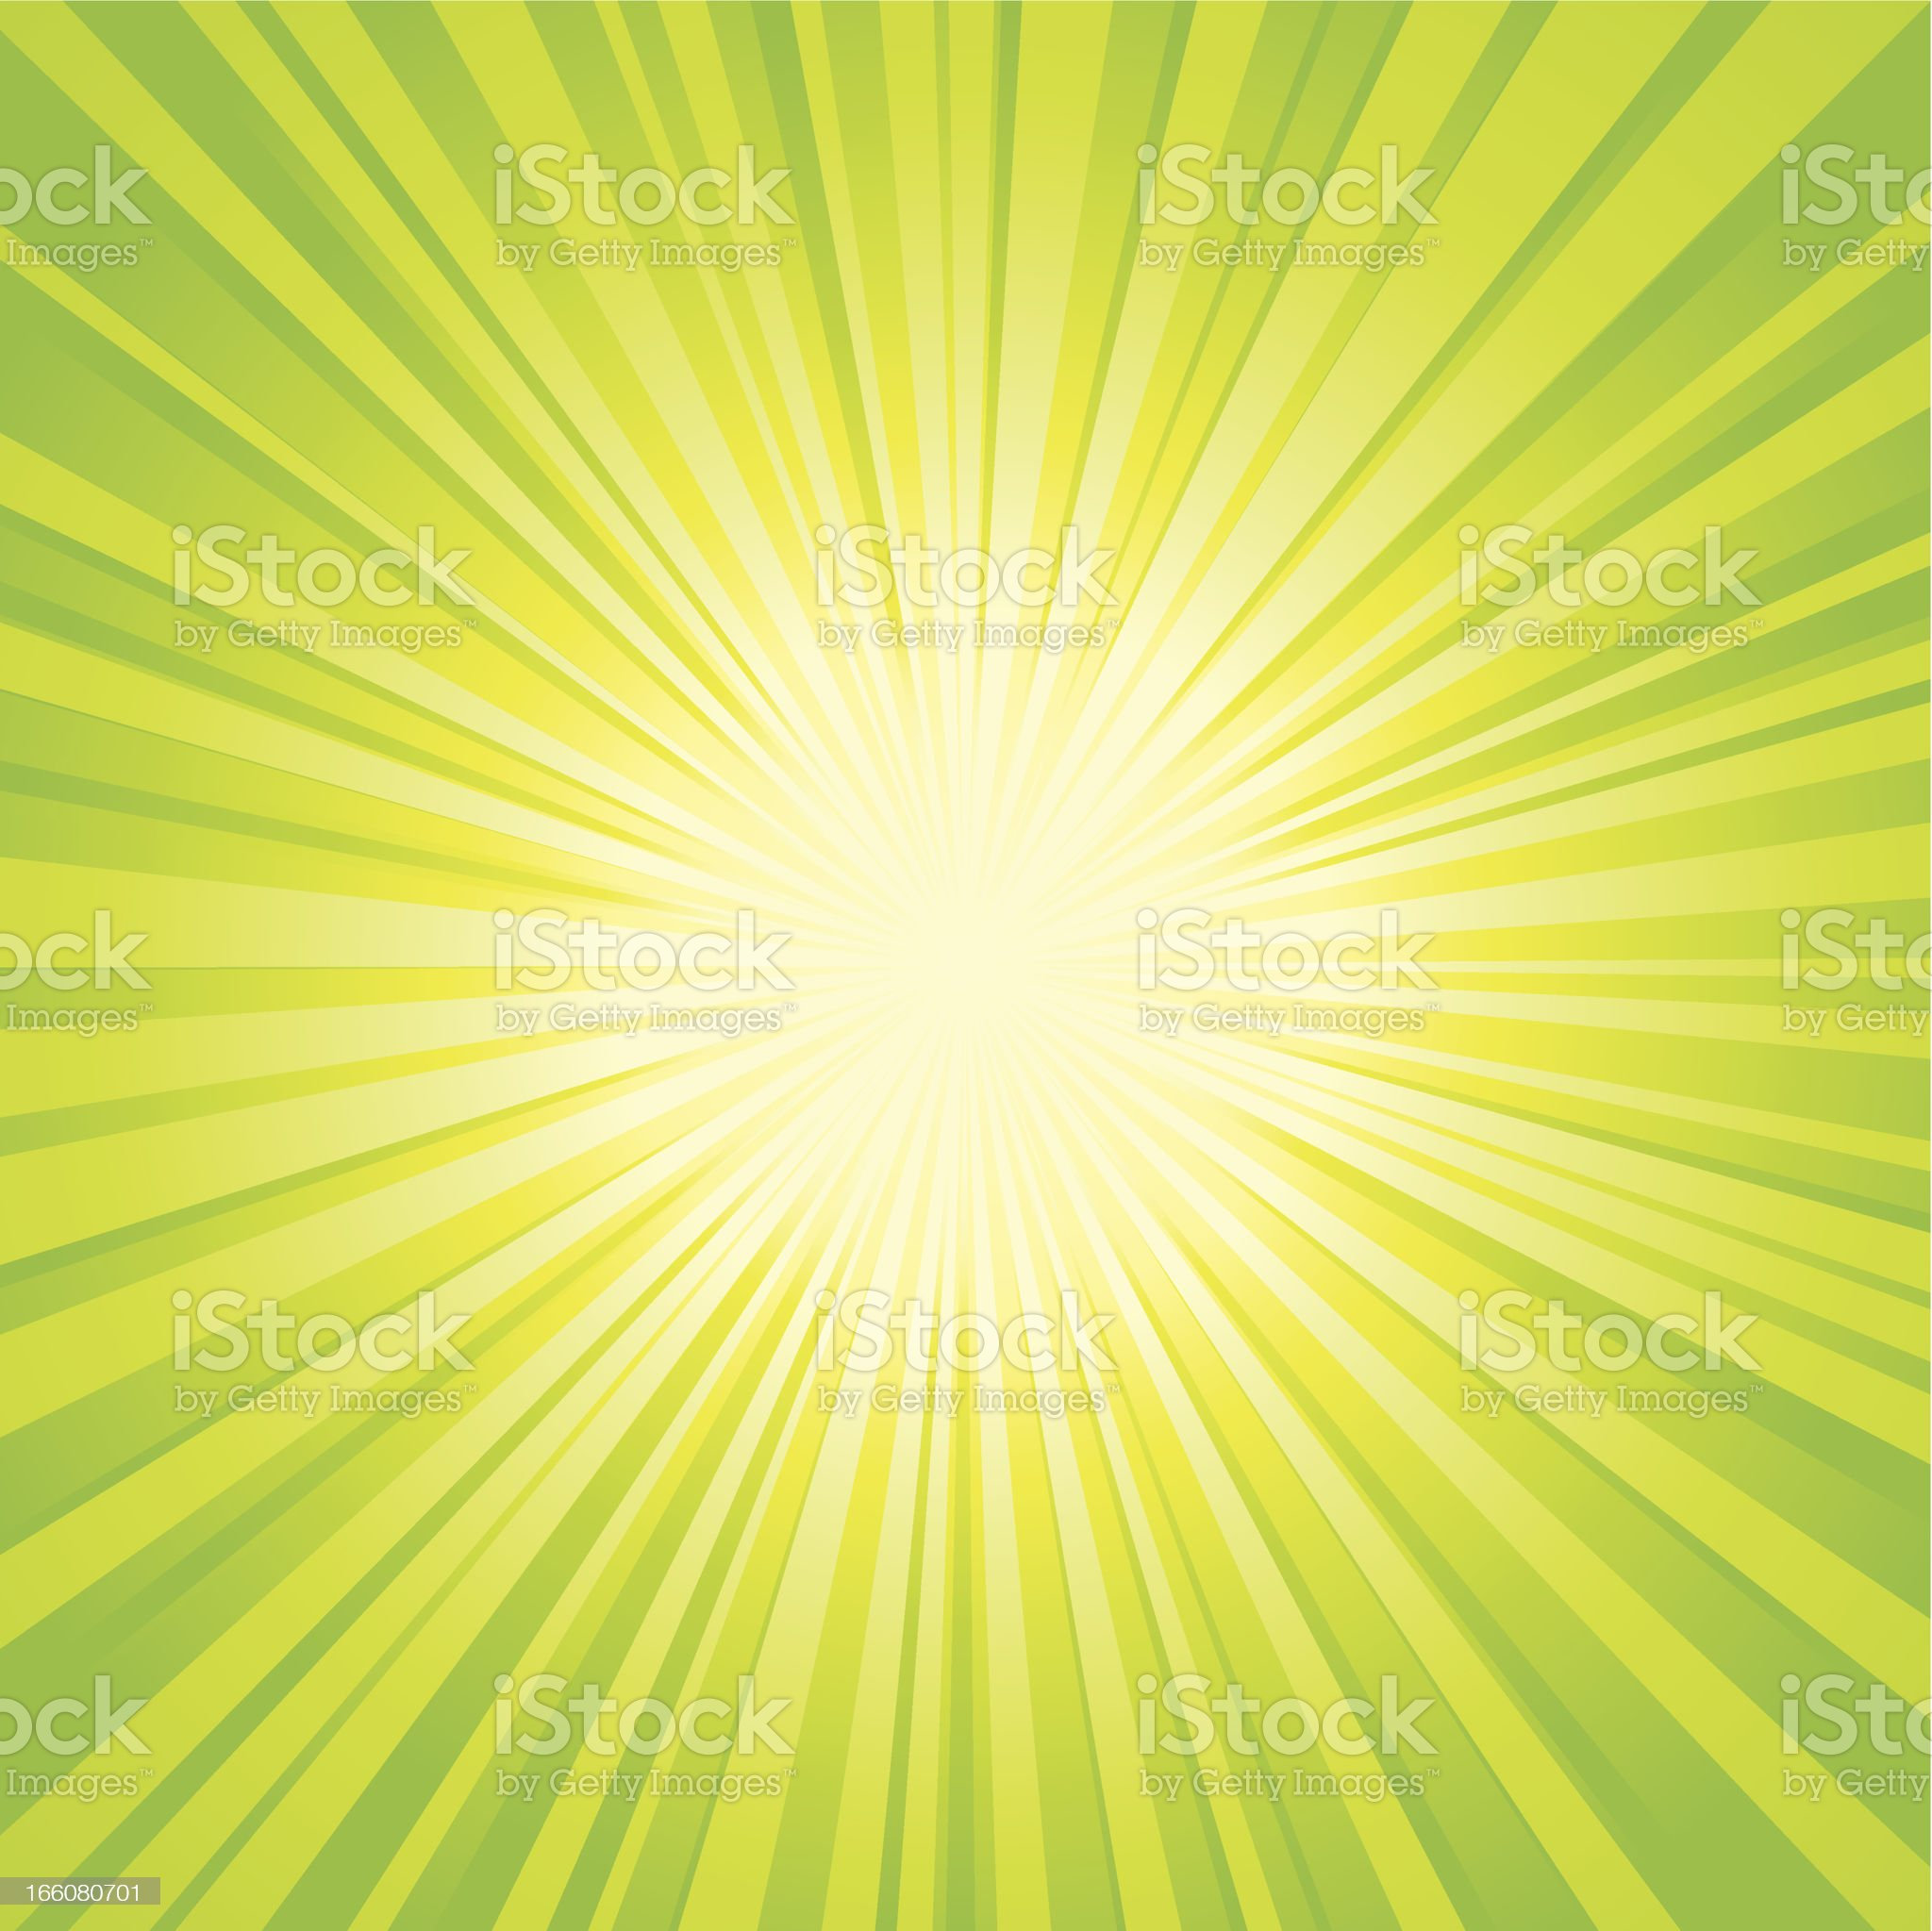 Green and yellow sunbeam backgrounds royalty-free stock vector art